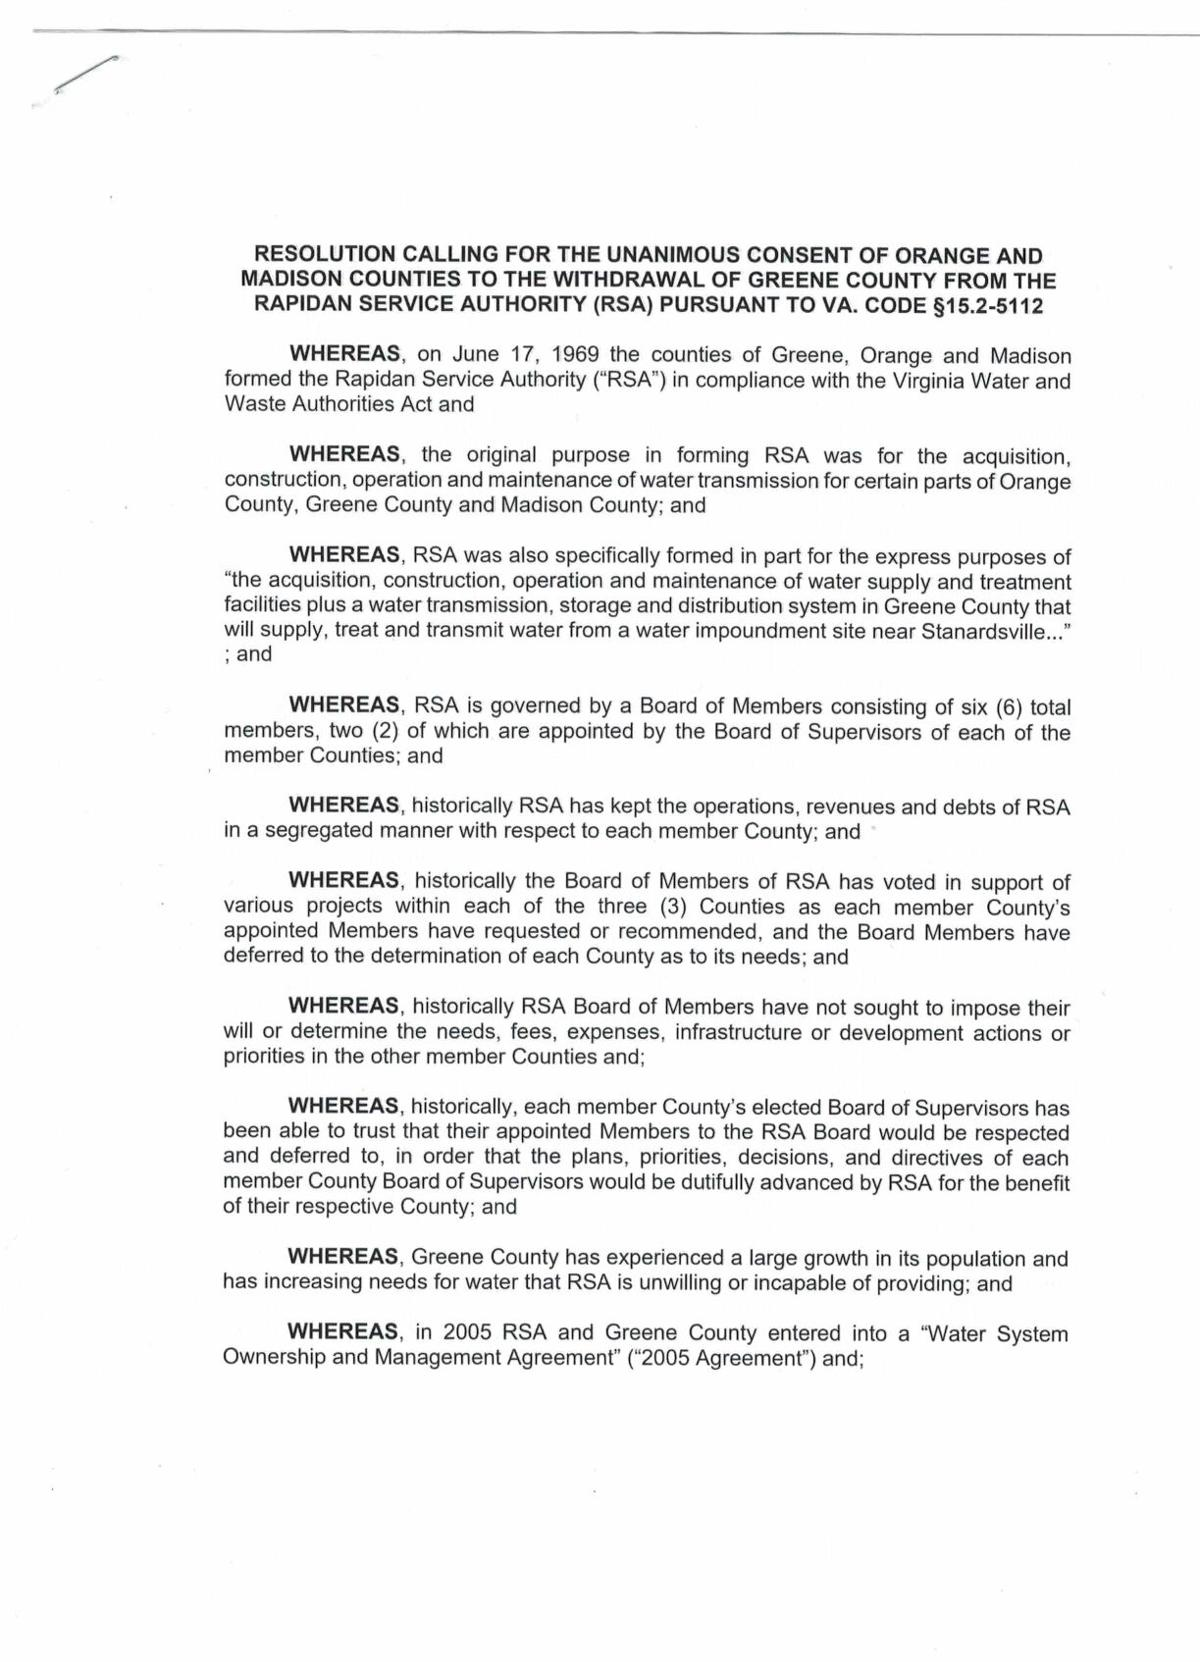 Resolution to withdrawal from RSA